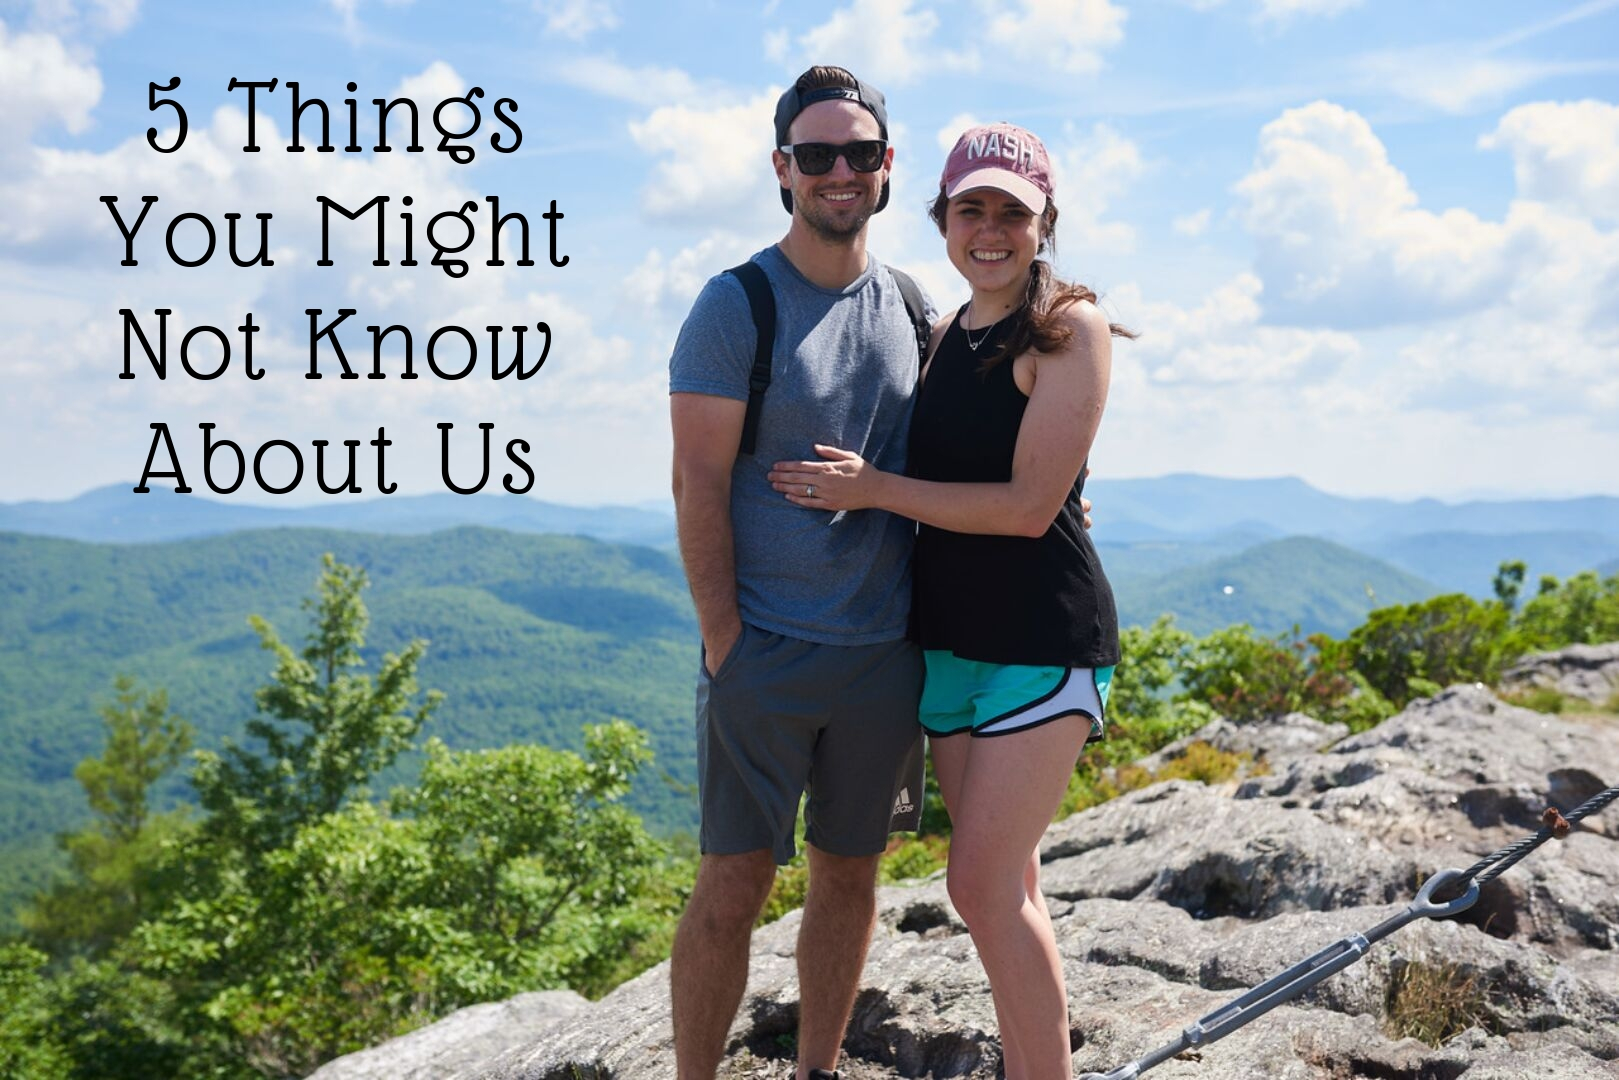 5 Things You Might Not Know About Us.jpg